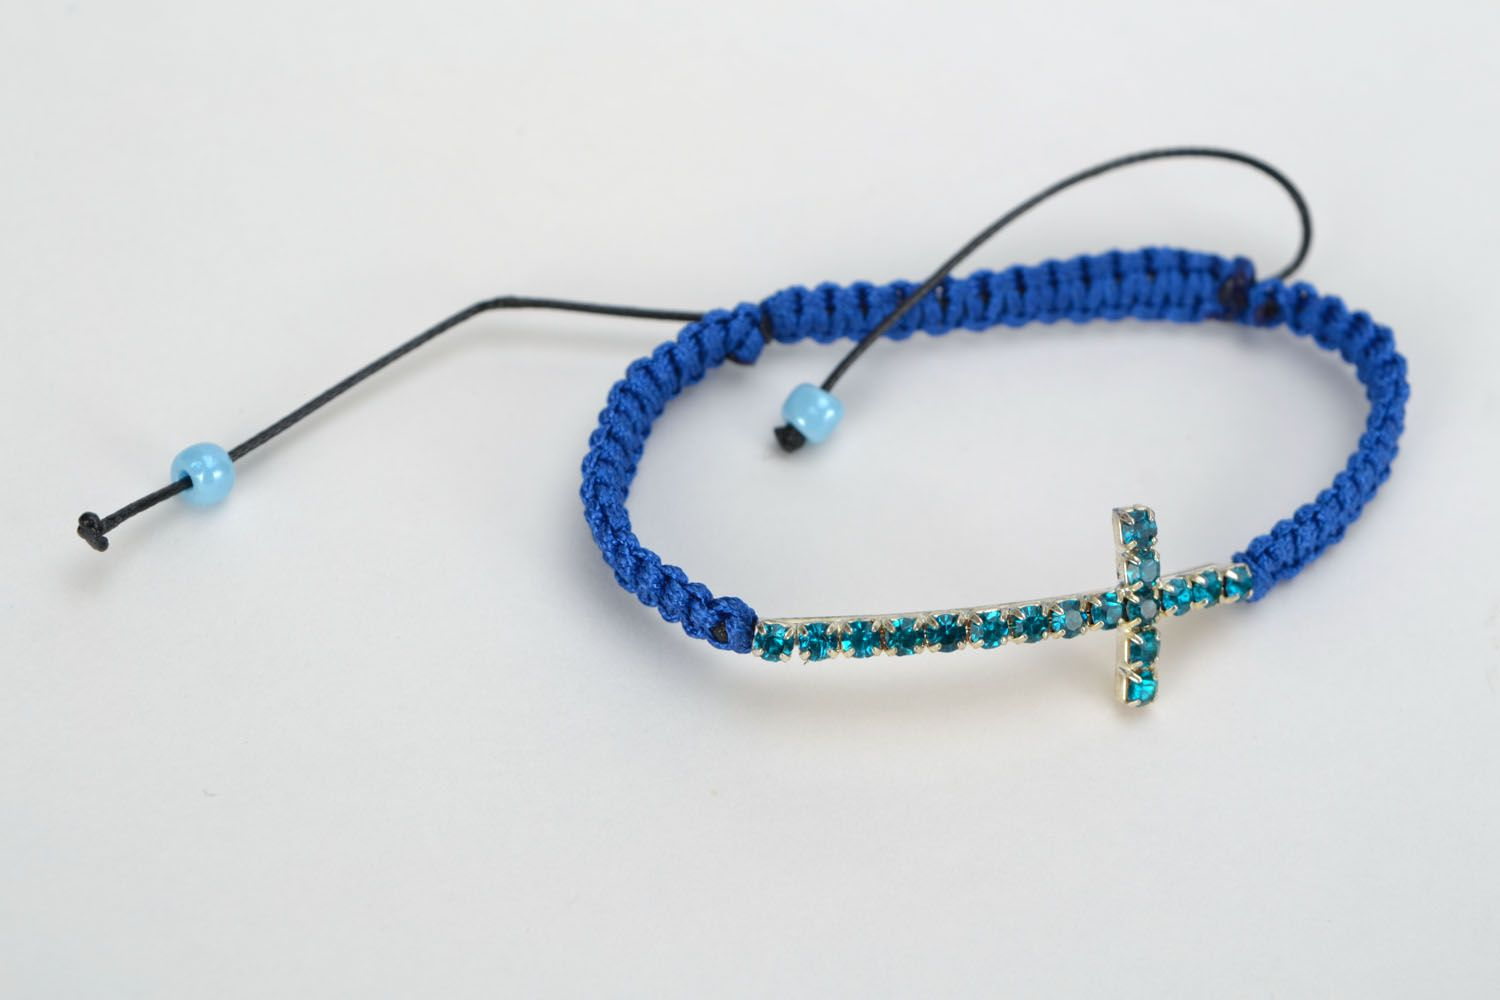 Homemade bracelet with crucifix photo 3